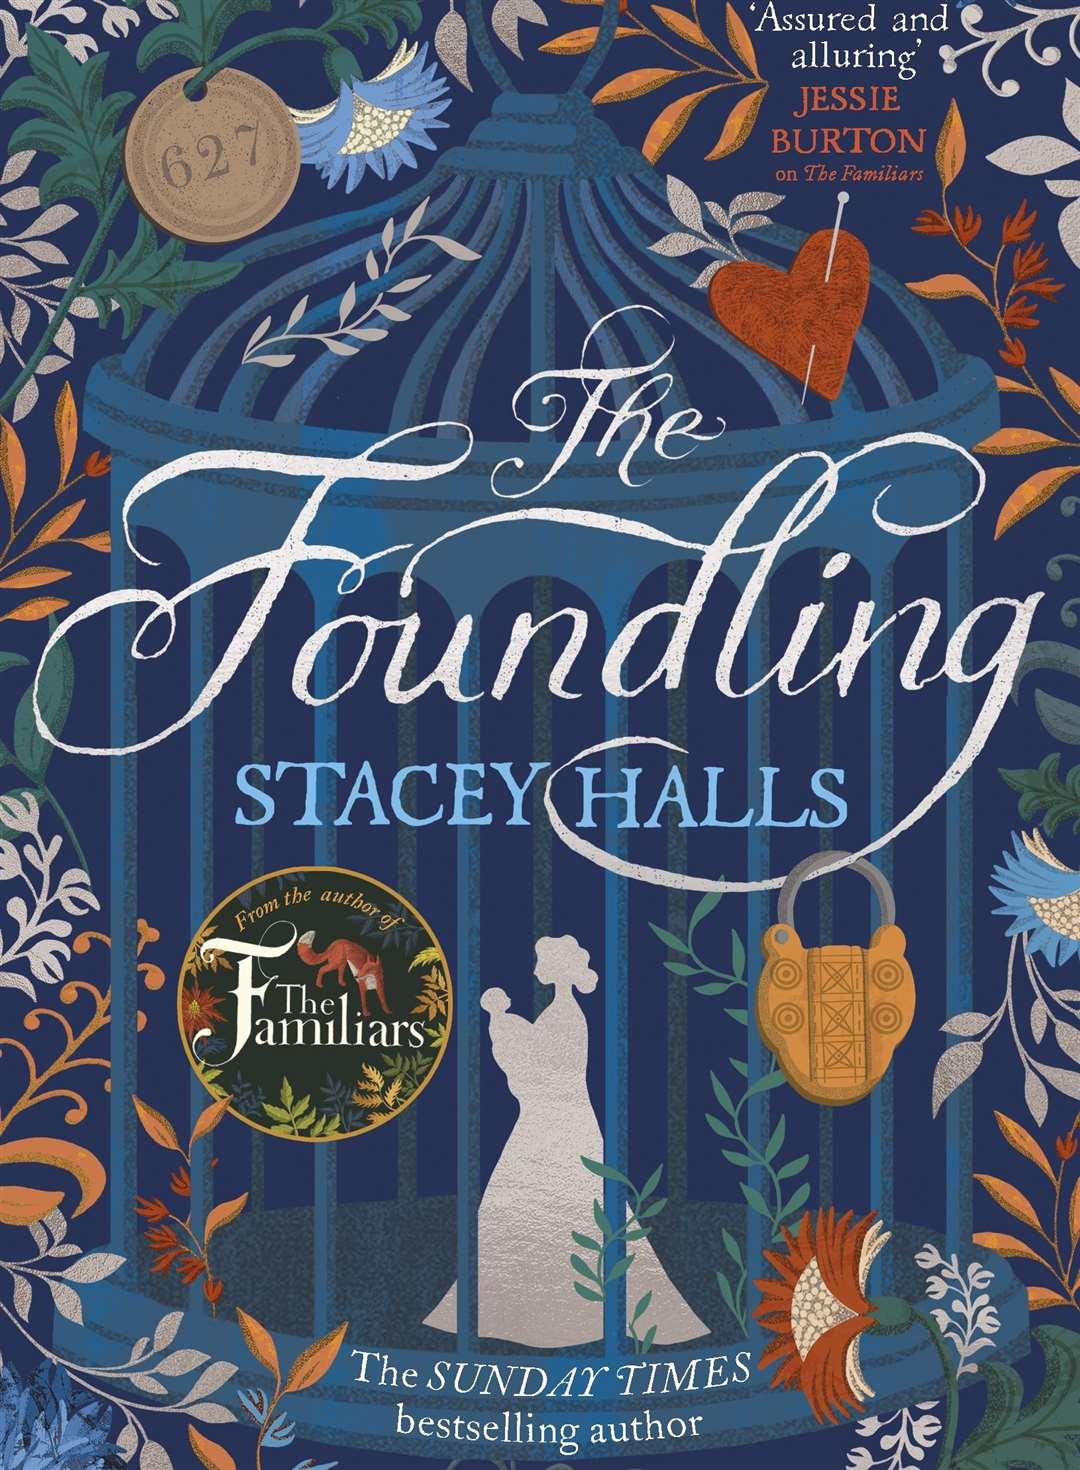 The new book titled The Foundling